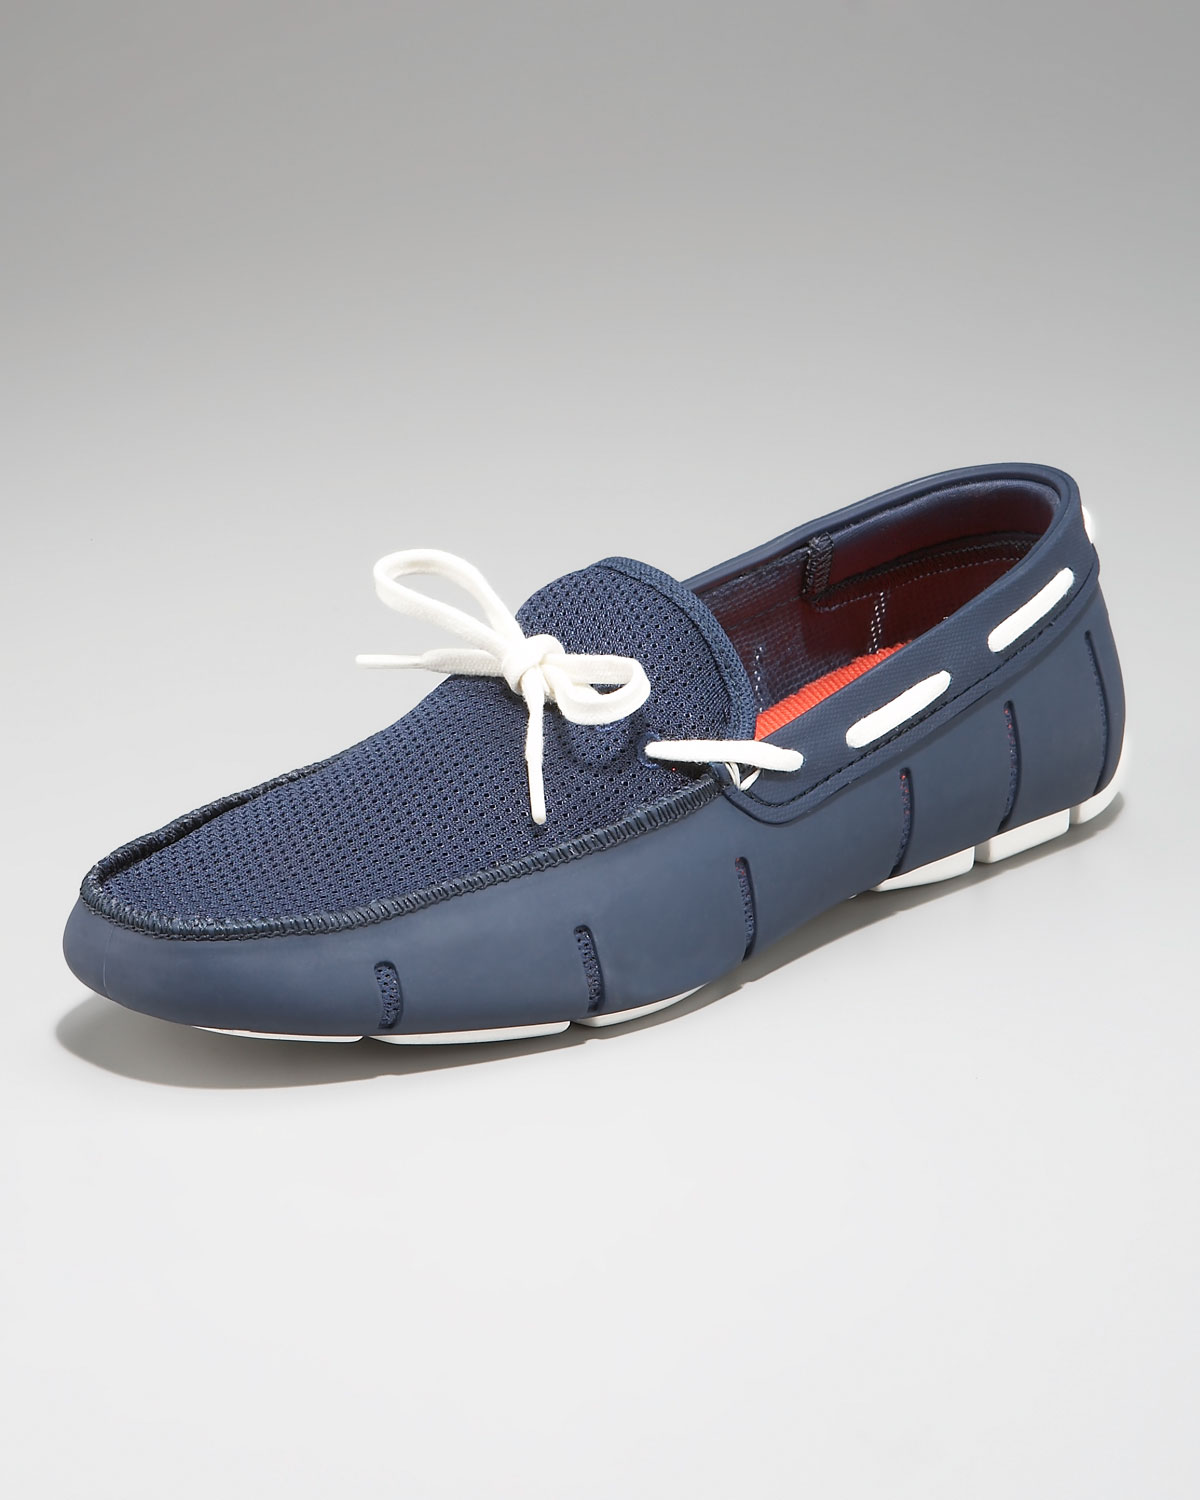 Swims Rubber Driving Loafers official site cheap online 1Sf2TjID